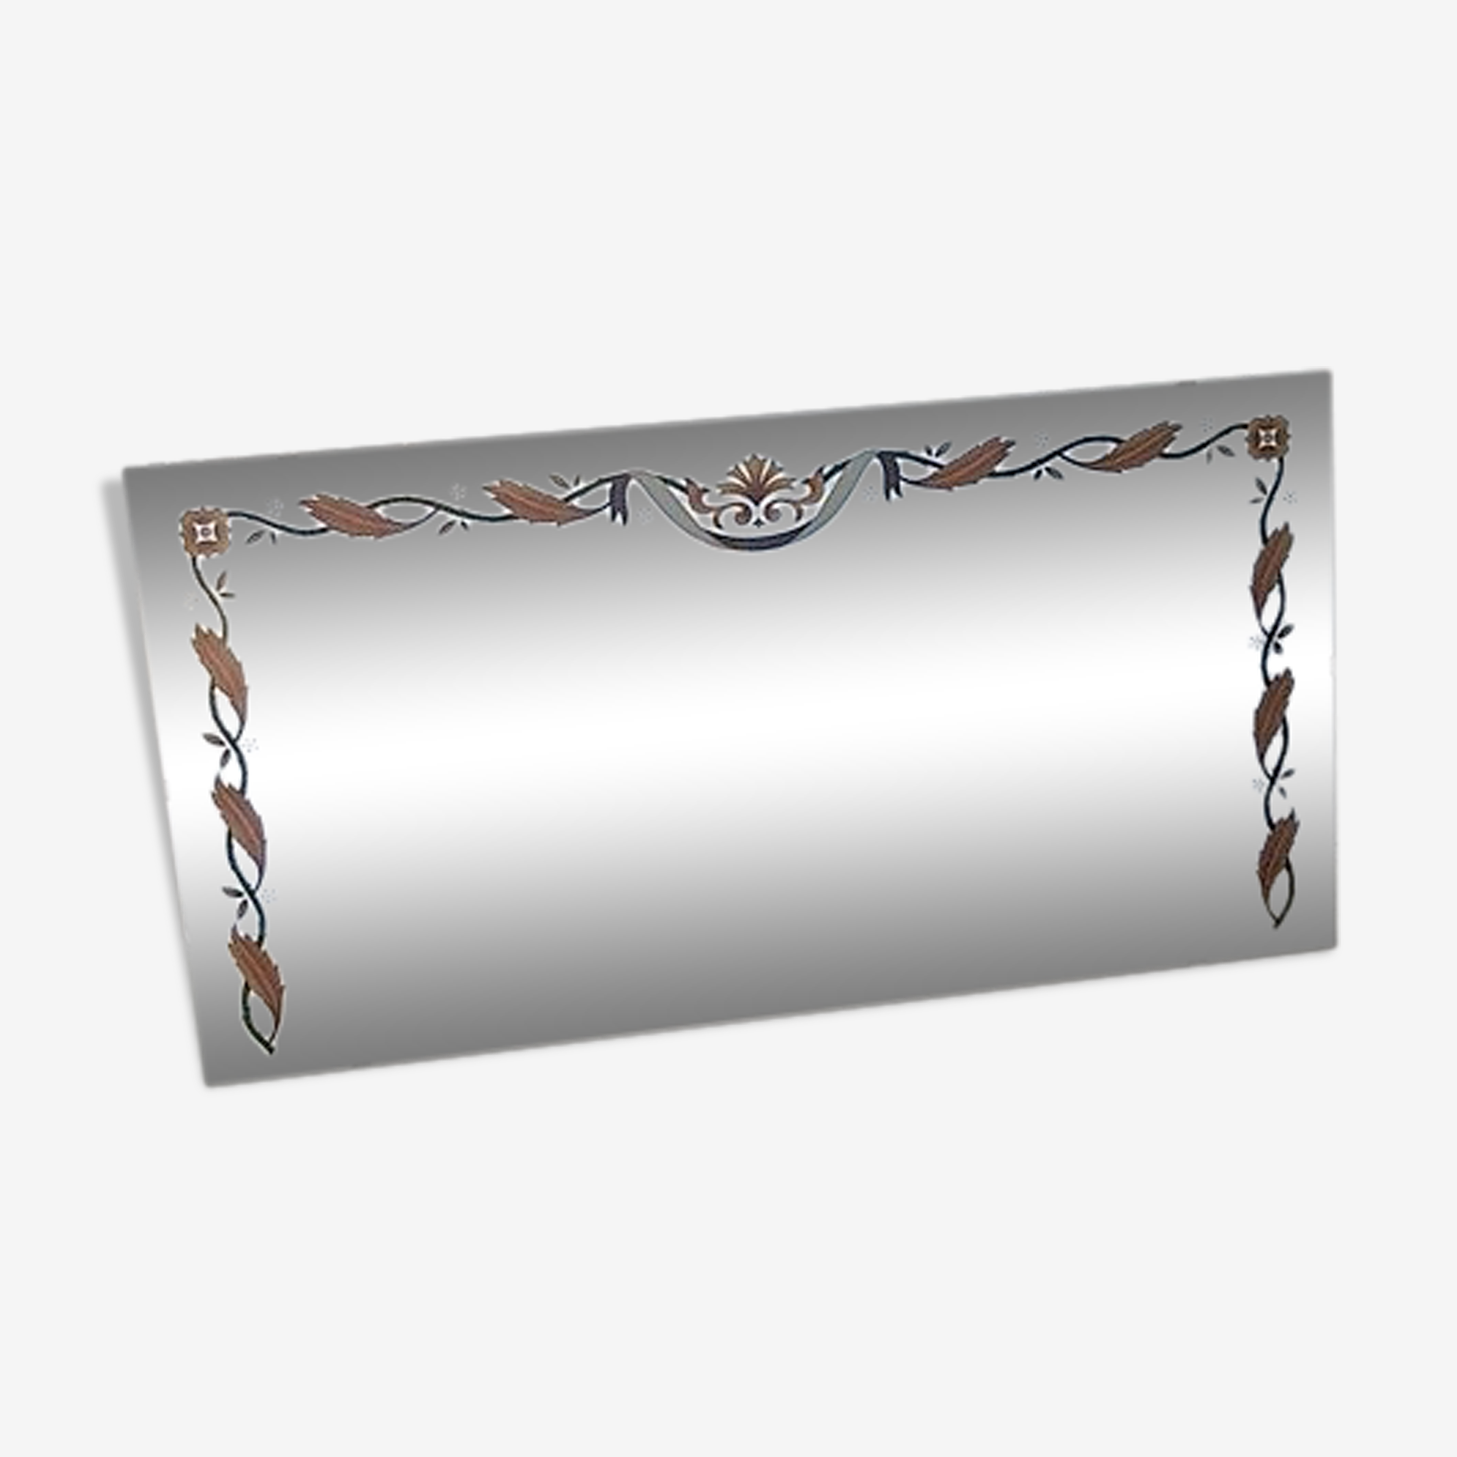 Venetian mirror with flower and leaf decoration 69x132cm